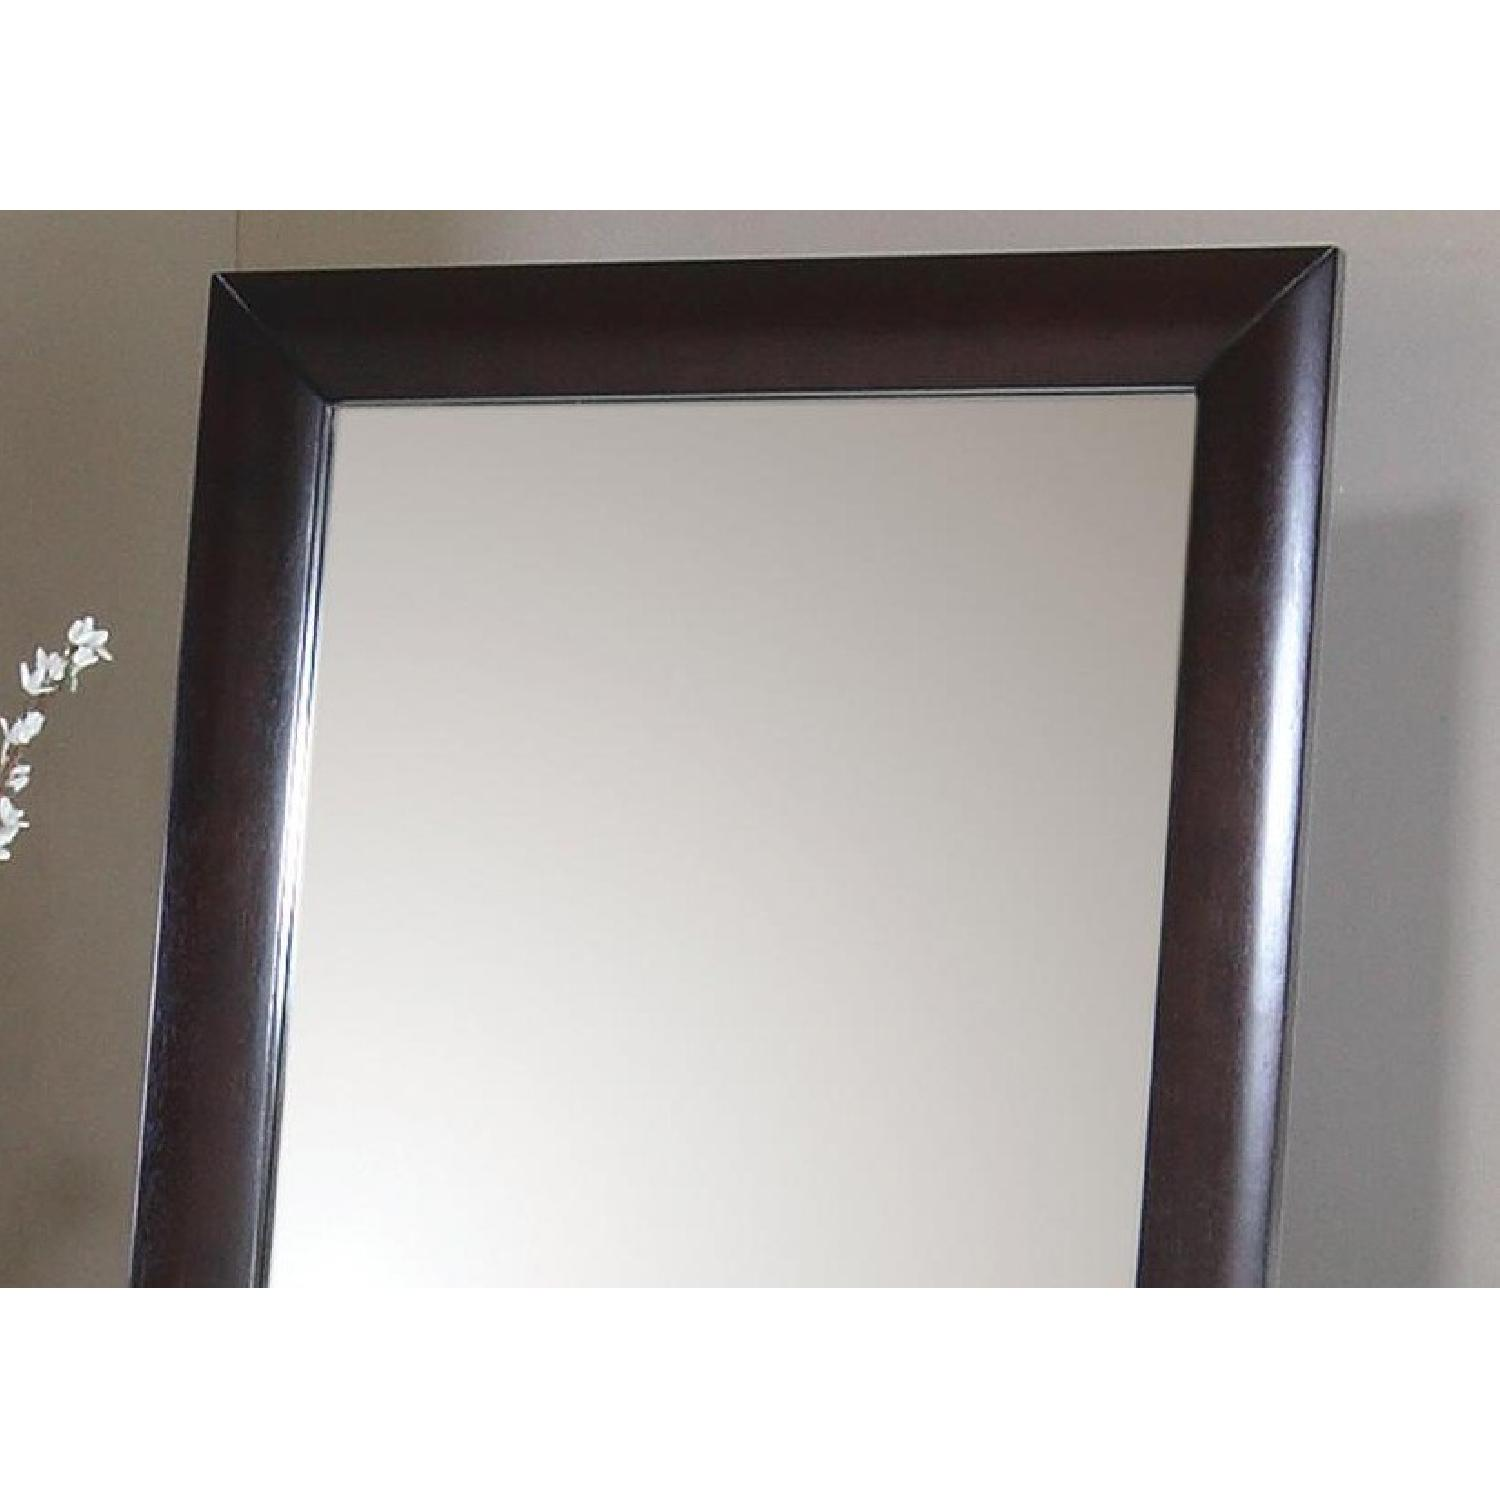 Contemporary Standing Floor Mirror in Warm Brown Finish - image-2